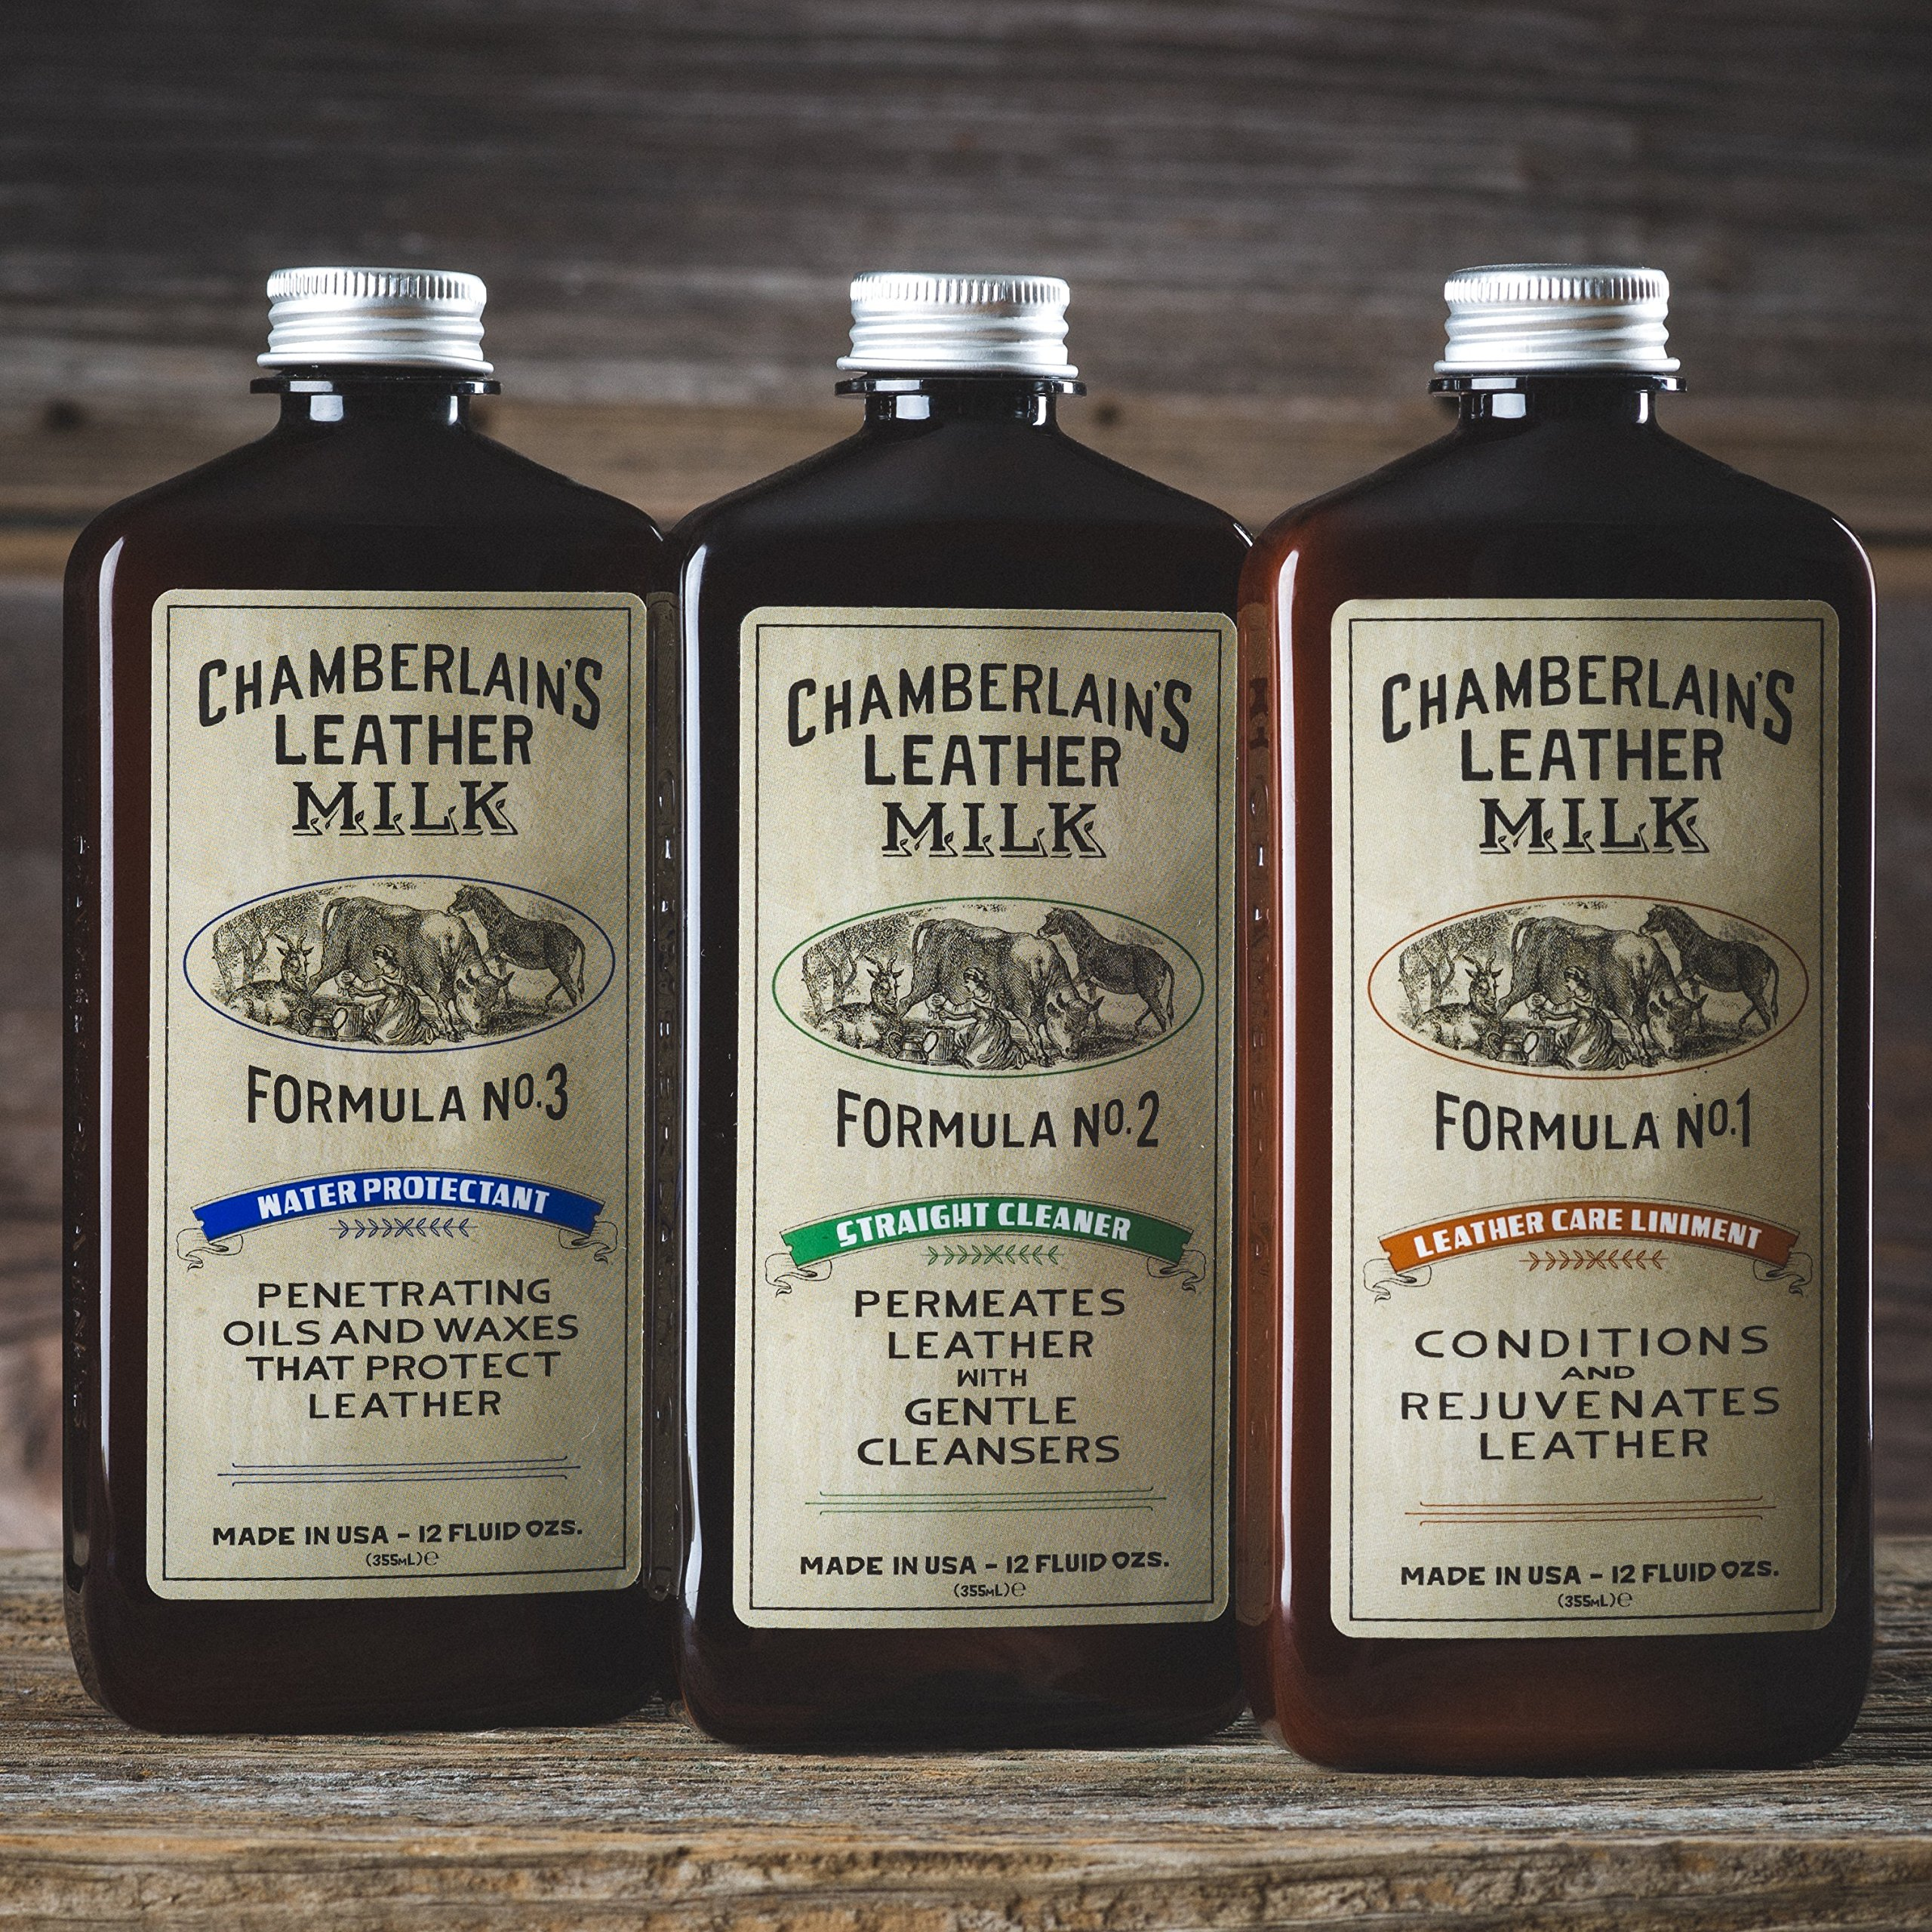 Leather Milk Leather Restoration Kit. Leather Cleaner, Conditioner, and Water Protector - No. 1-3 Leather Care Kit - All Natural, Non-Toxic. 2 Sizes. Made in The USA. Includes 3 Restoration Pads! by Chamberlain's Leather Milk (Image #2)